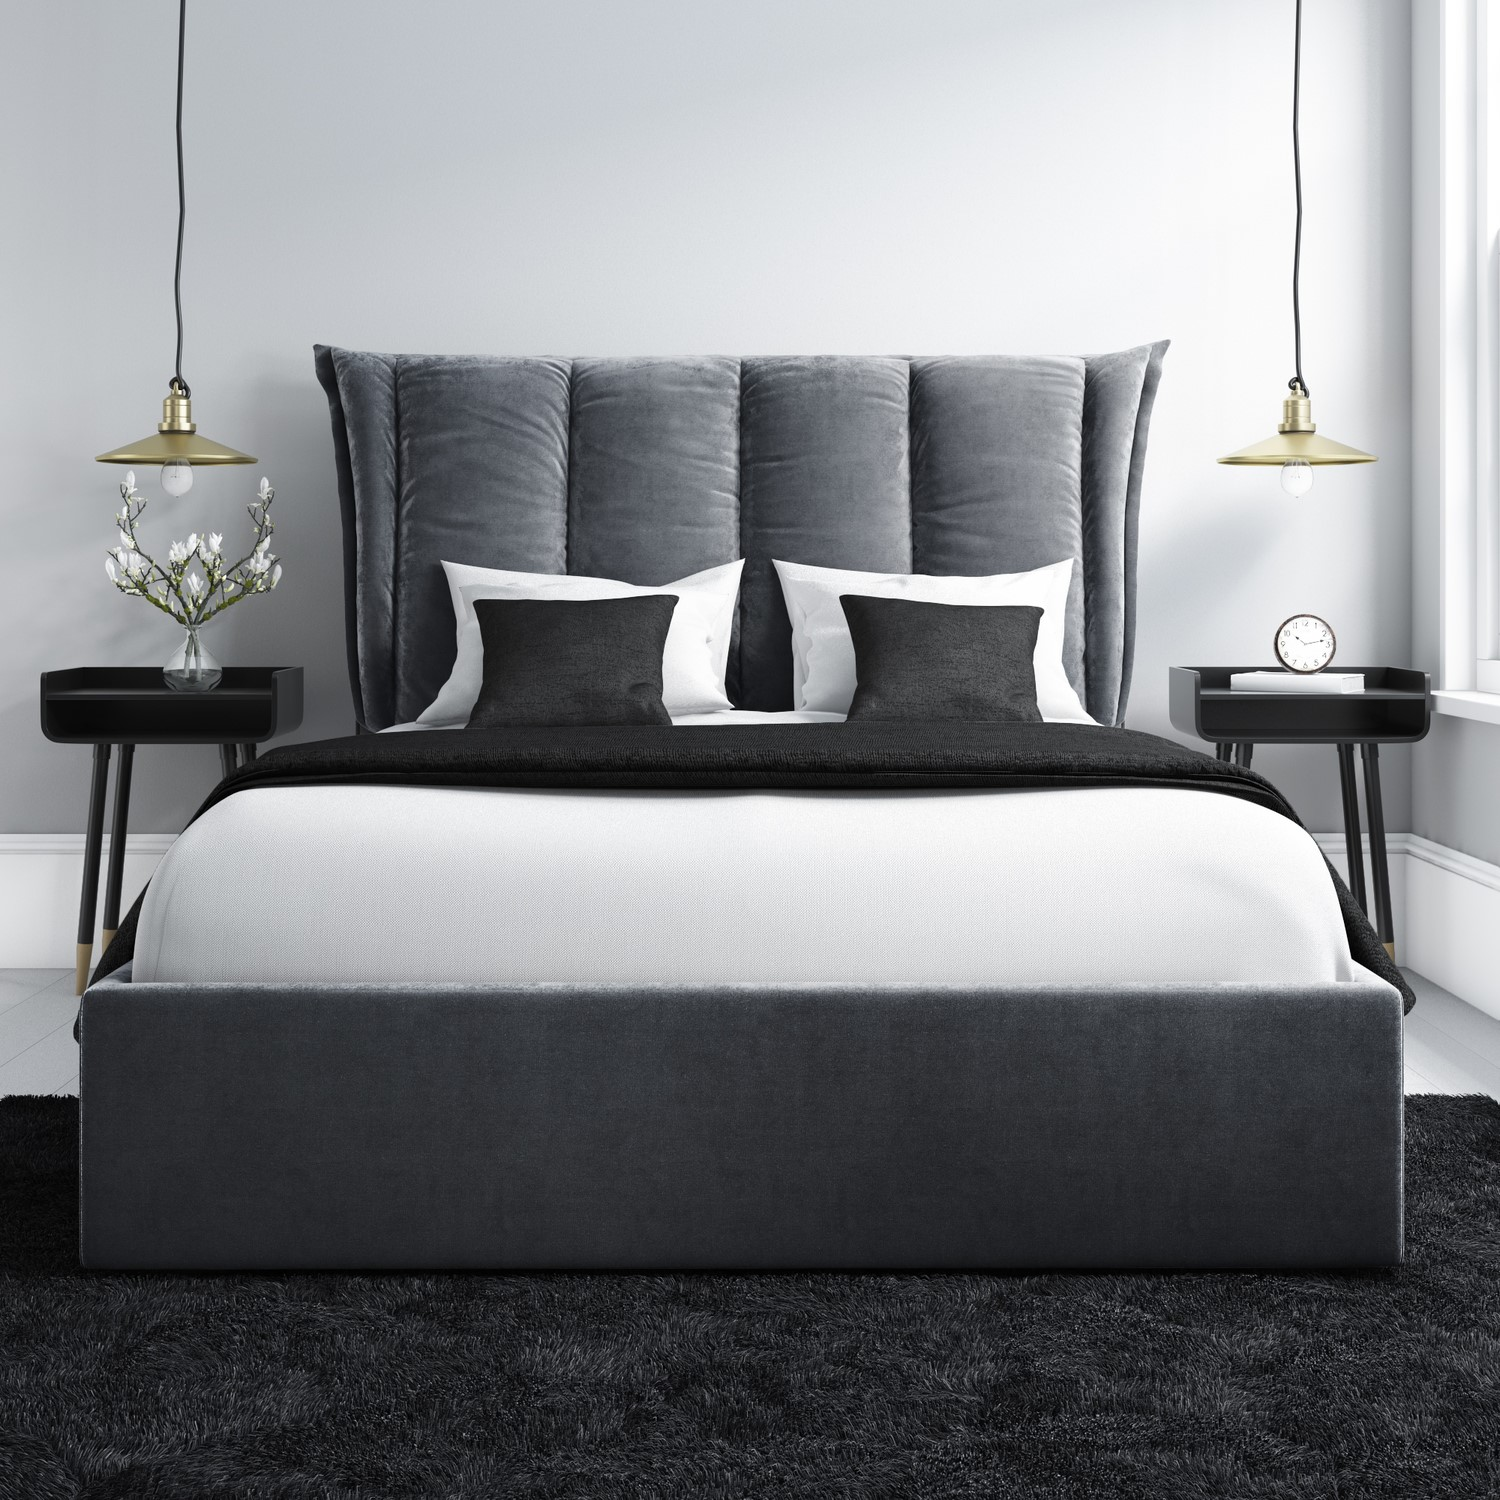 Details About Maddox Double Ottoman Bed With Cushioned Headboard In Silver Grey Velvet Mad001